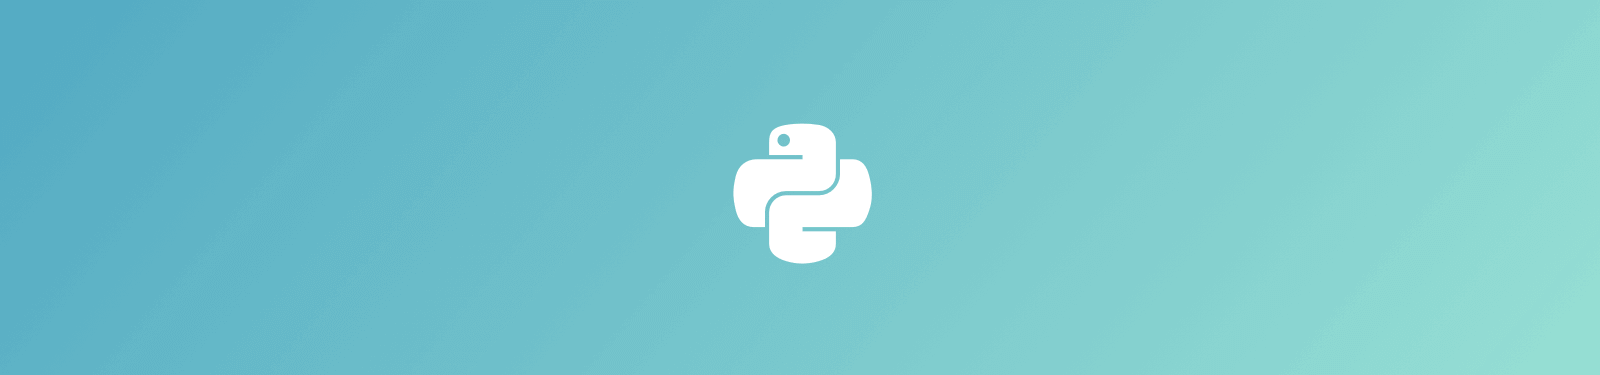 Python Security Best Practices Cheat Sheet | Snyk